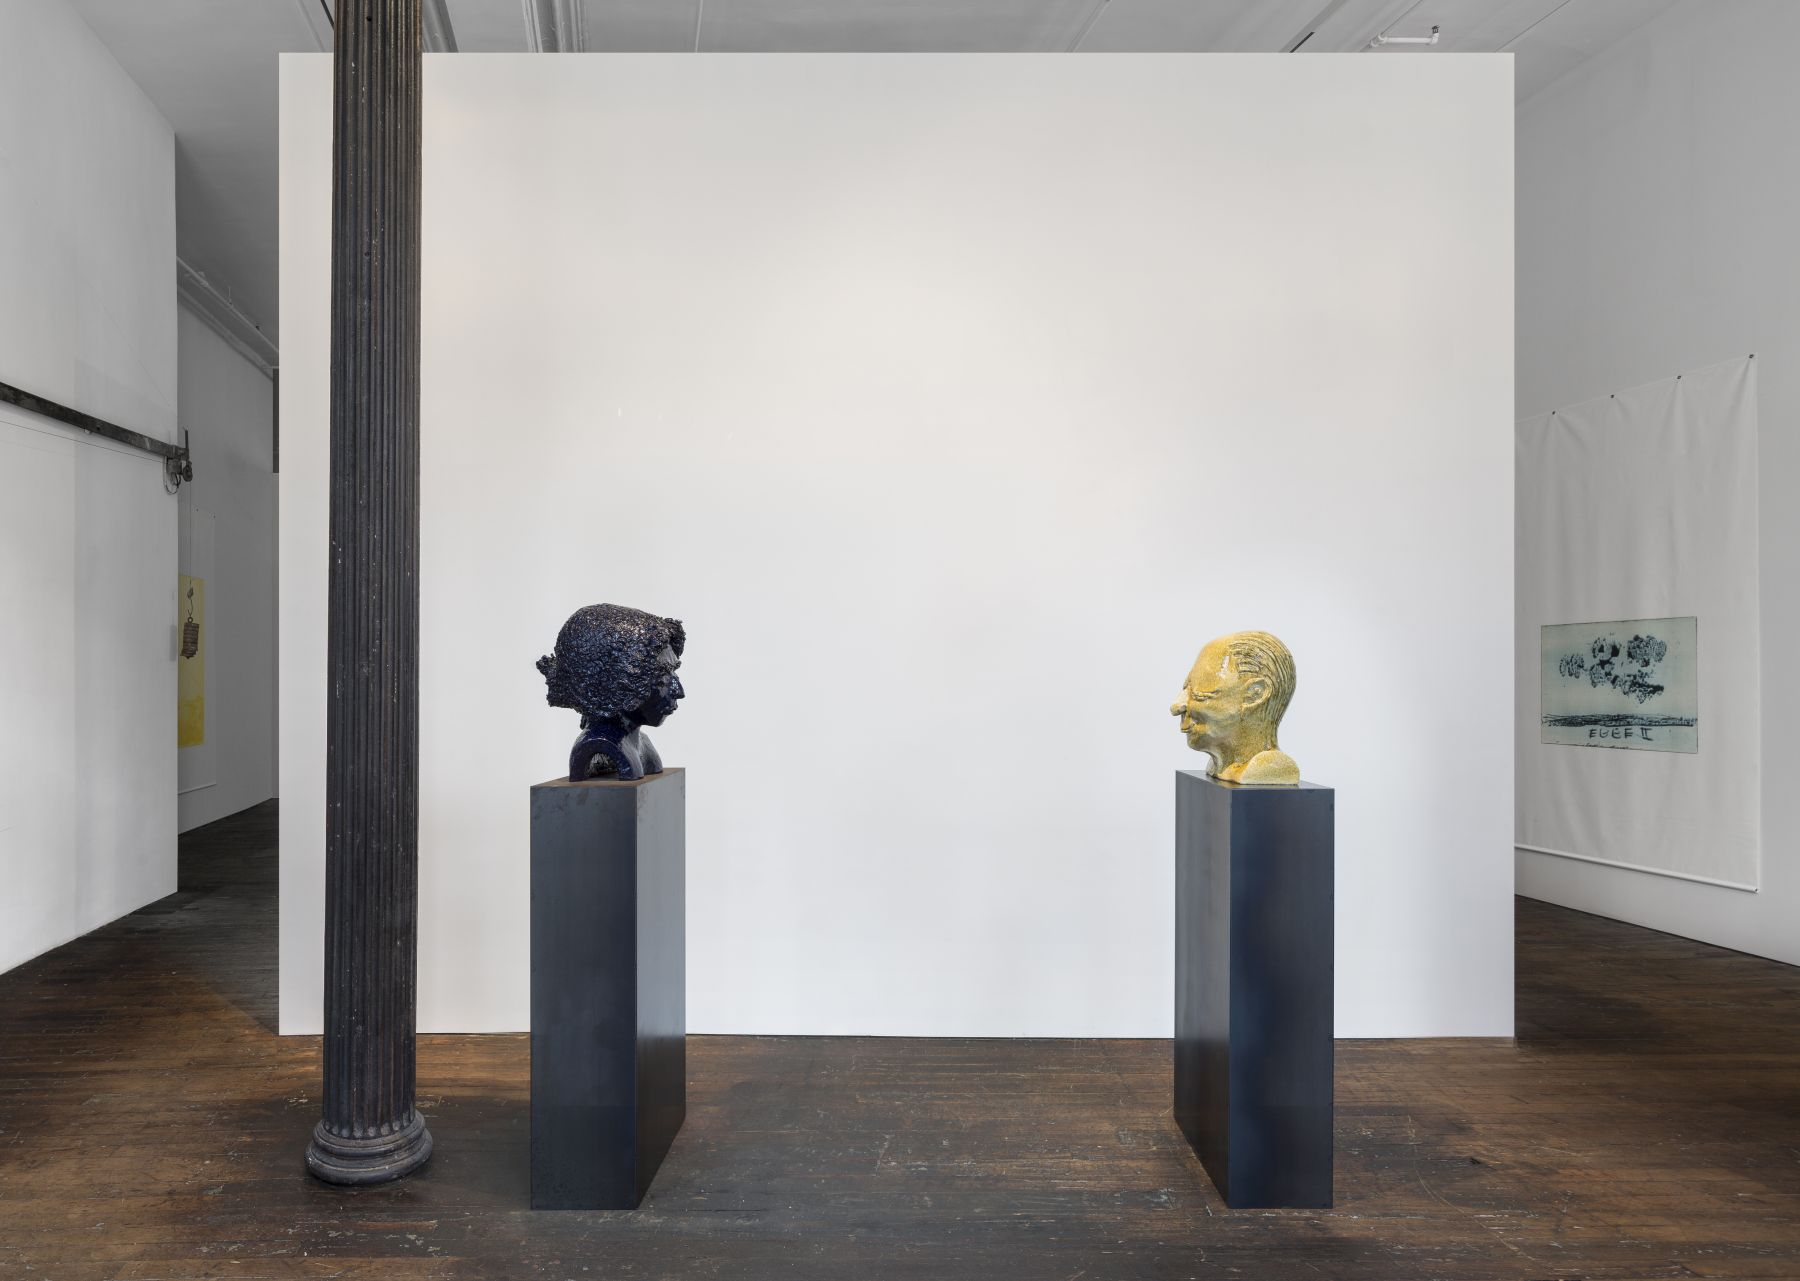 Thomas Schütte – installation view 1